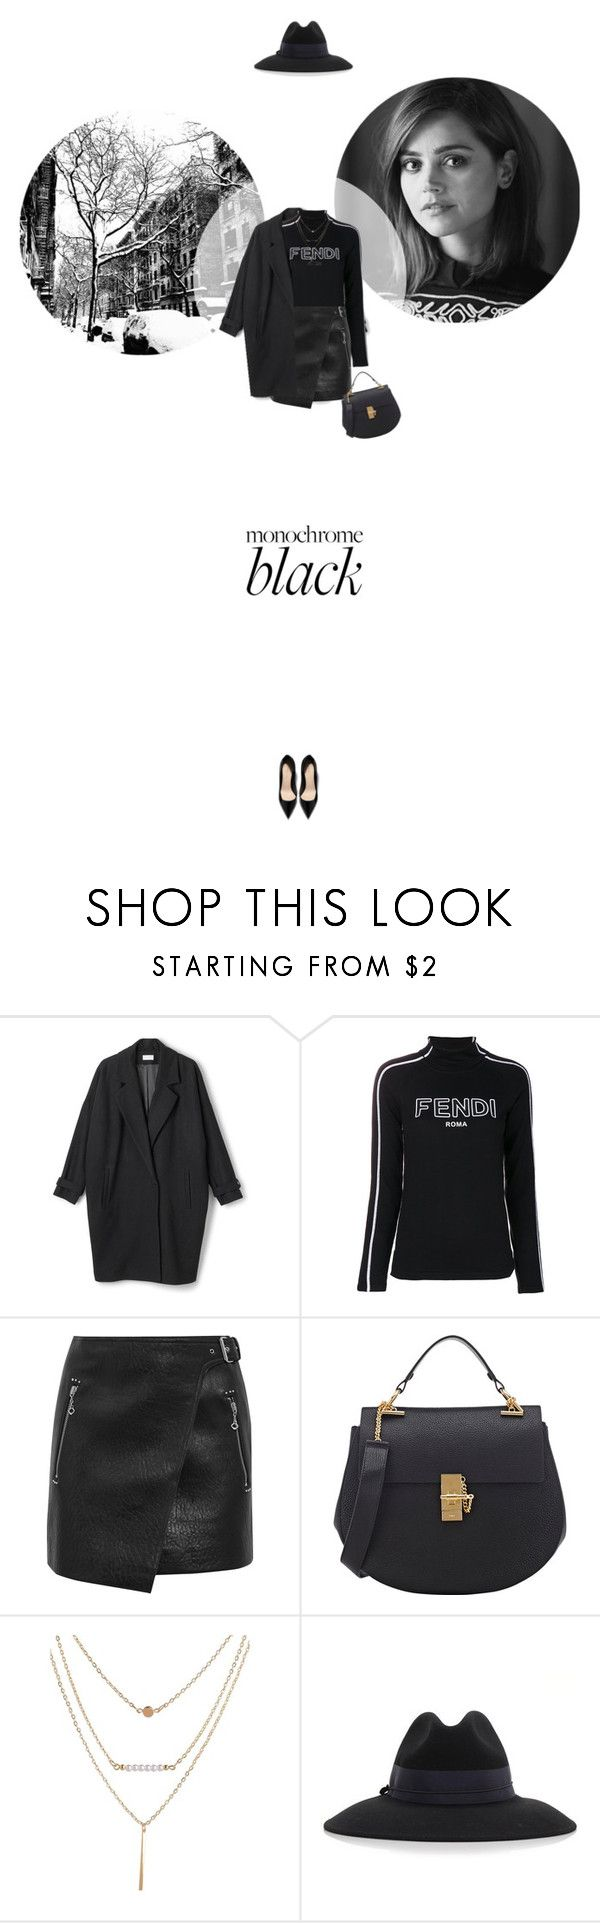 // 1334. Monochrome: All Black Everything. by lilymcenvy on Polyvore featuring Fendi, Étoile Isabel Marant, Chloé, Federica Moretti and allblack